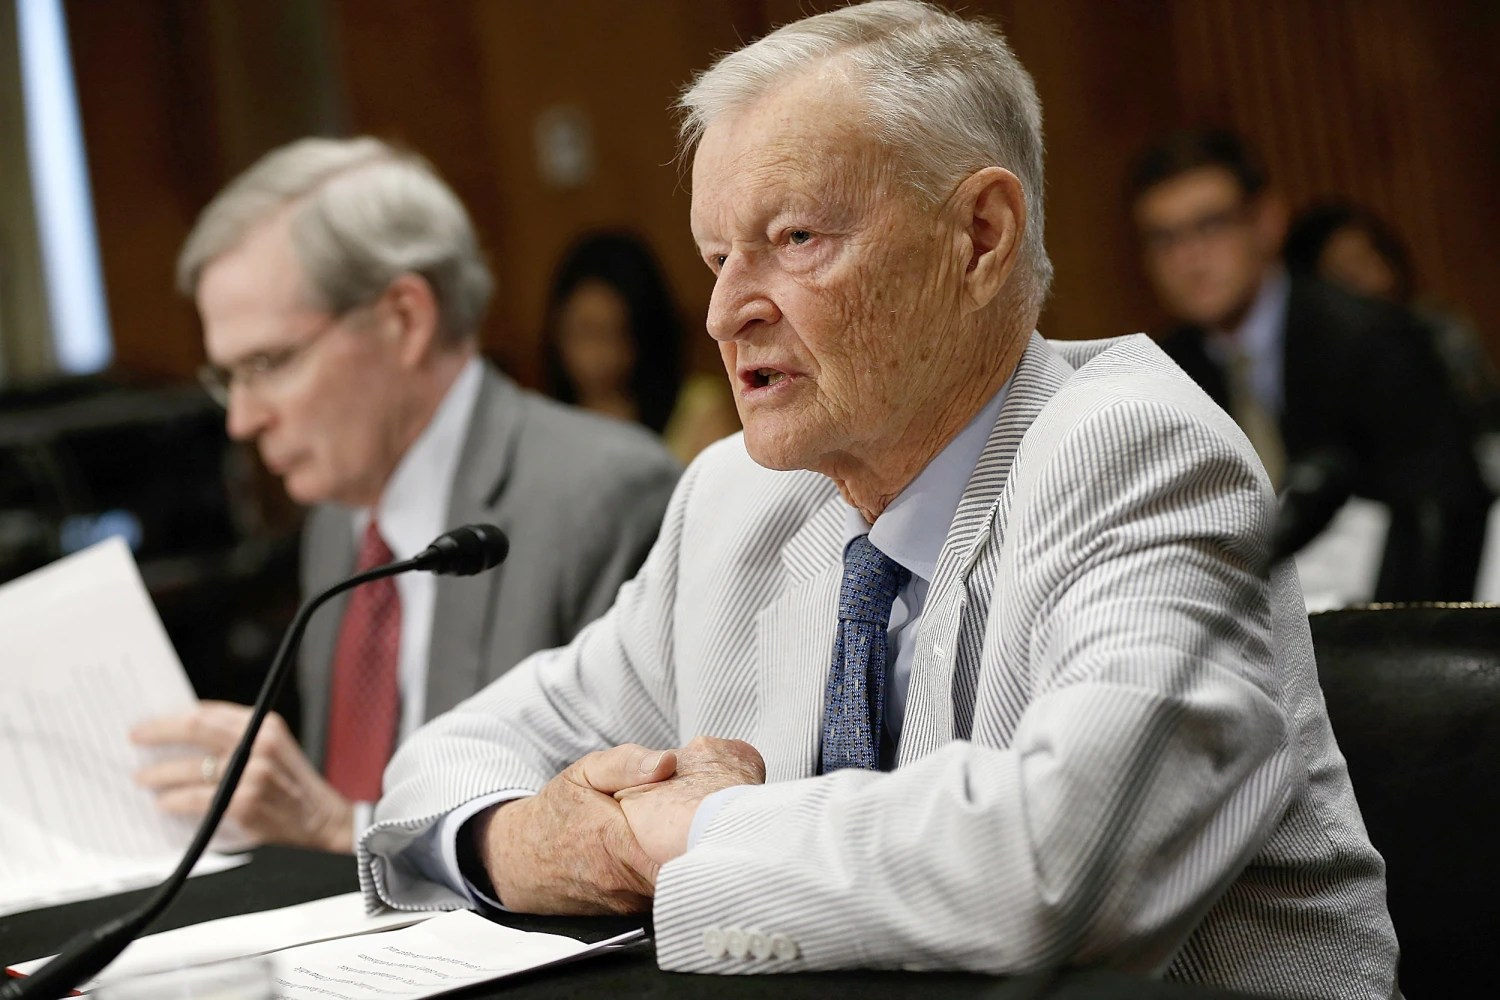 Zbigniew Brzezinski, Carter Adviser, Dead at 89